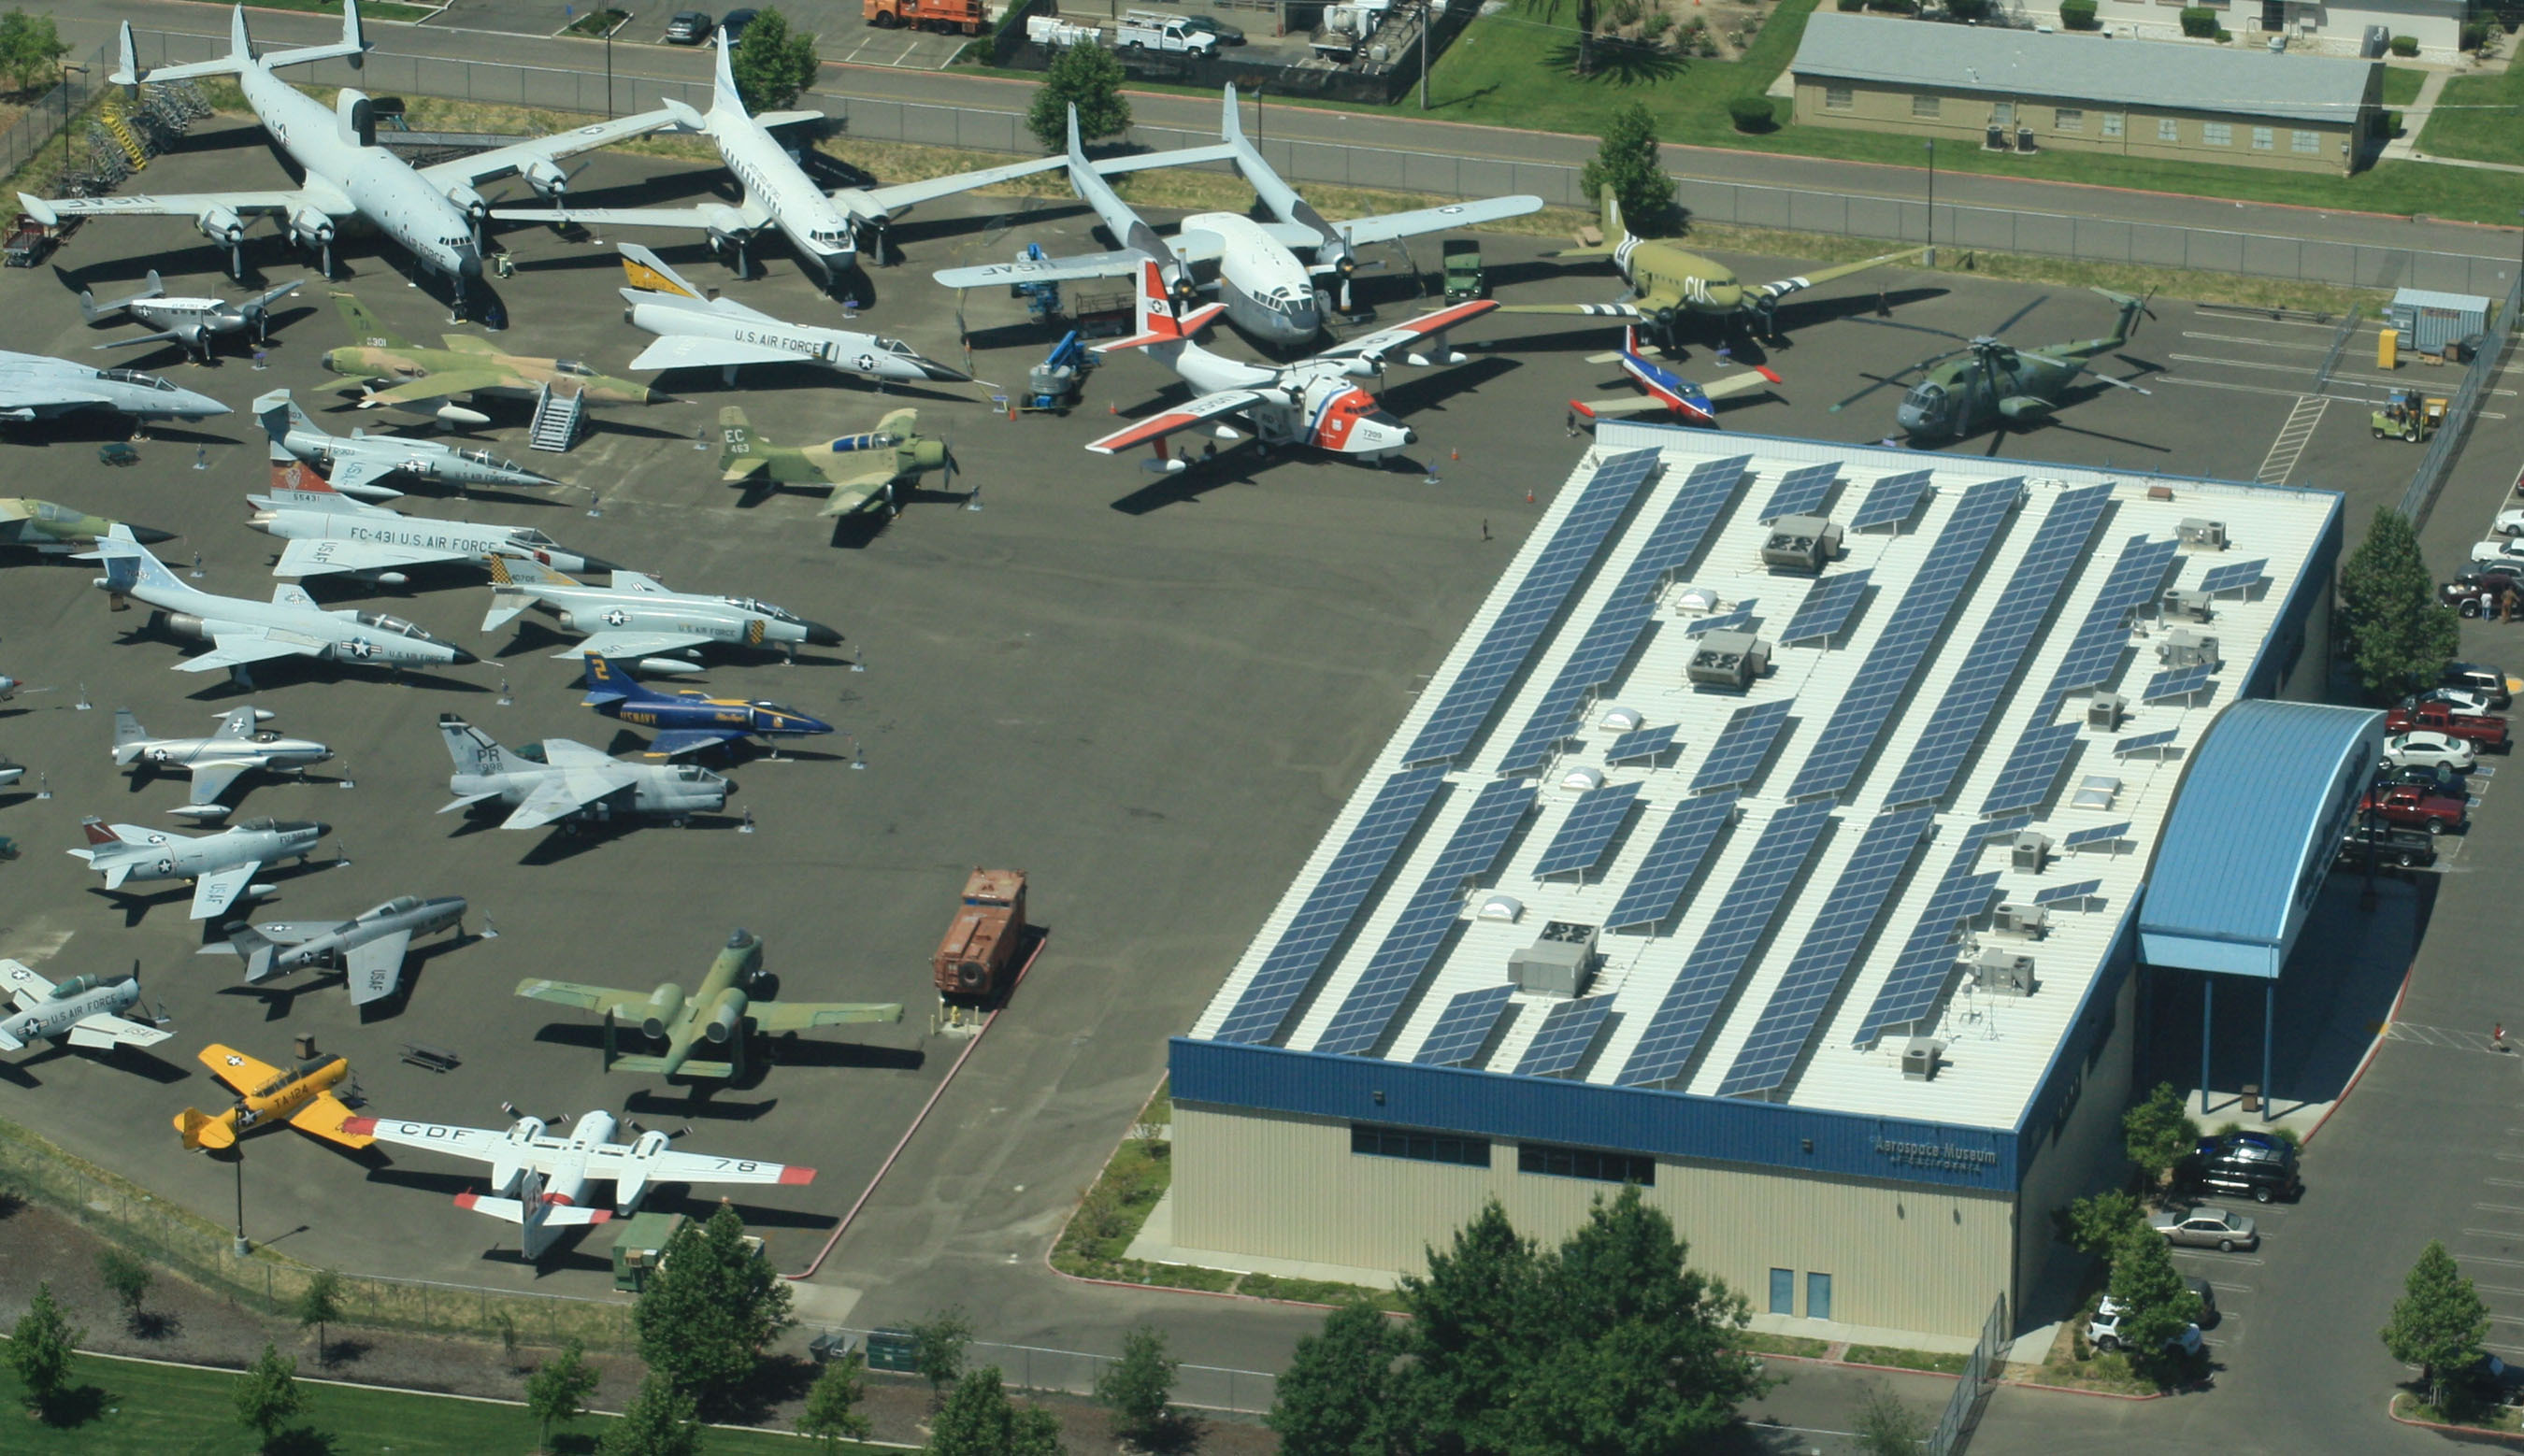 177.7-kW Solar Power System Installed at Aerospace Museum